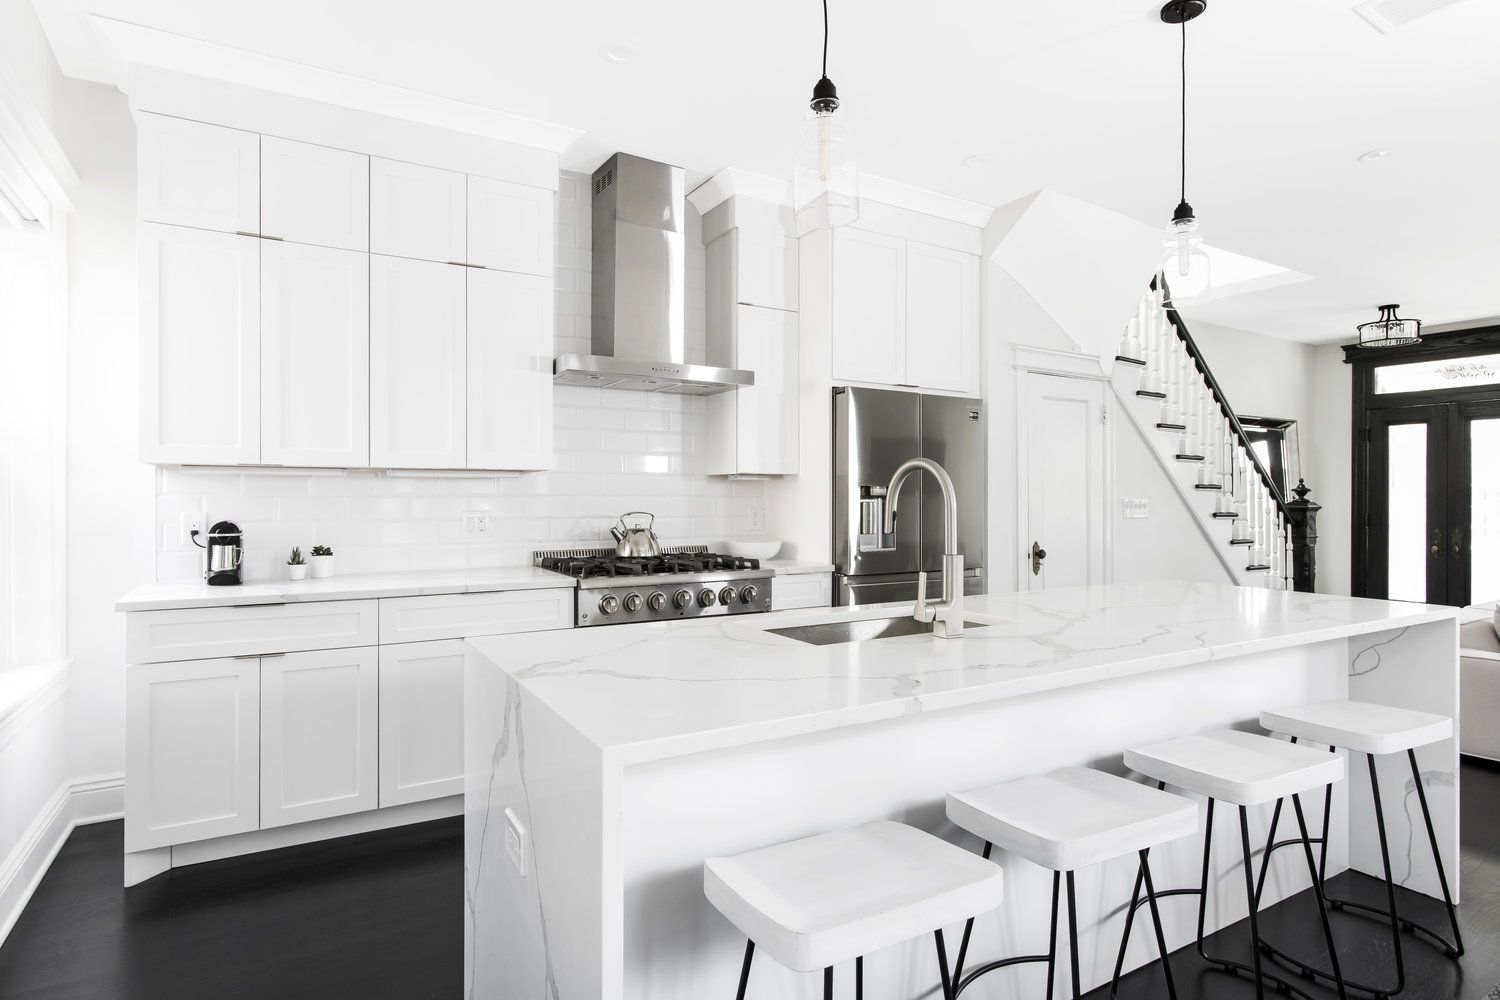 Architects Builders Serving Northern Nj And Nyc Design Build Firm Building Design House Design